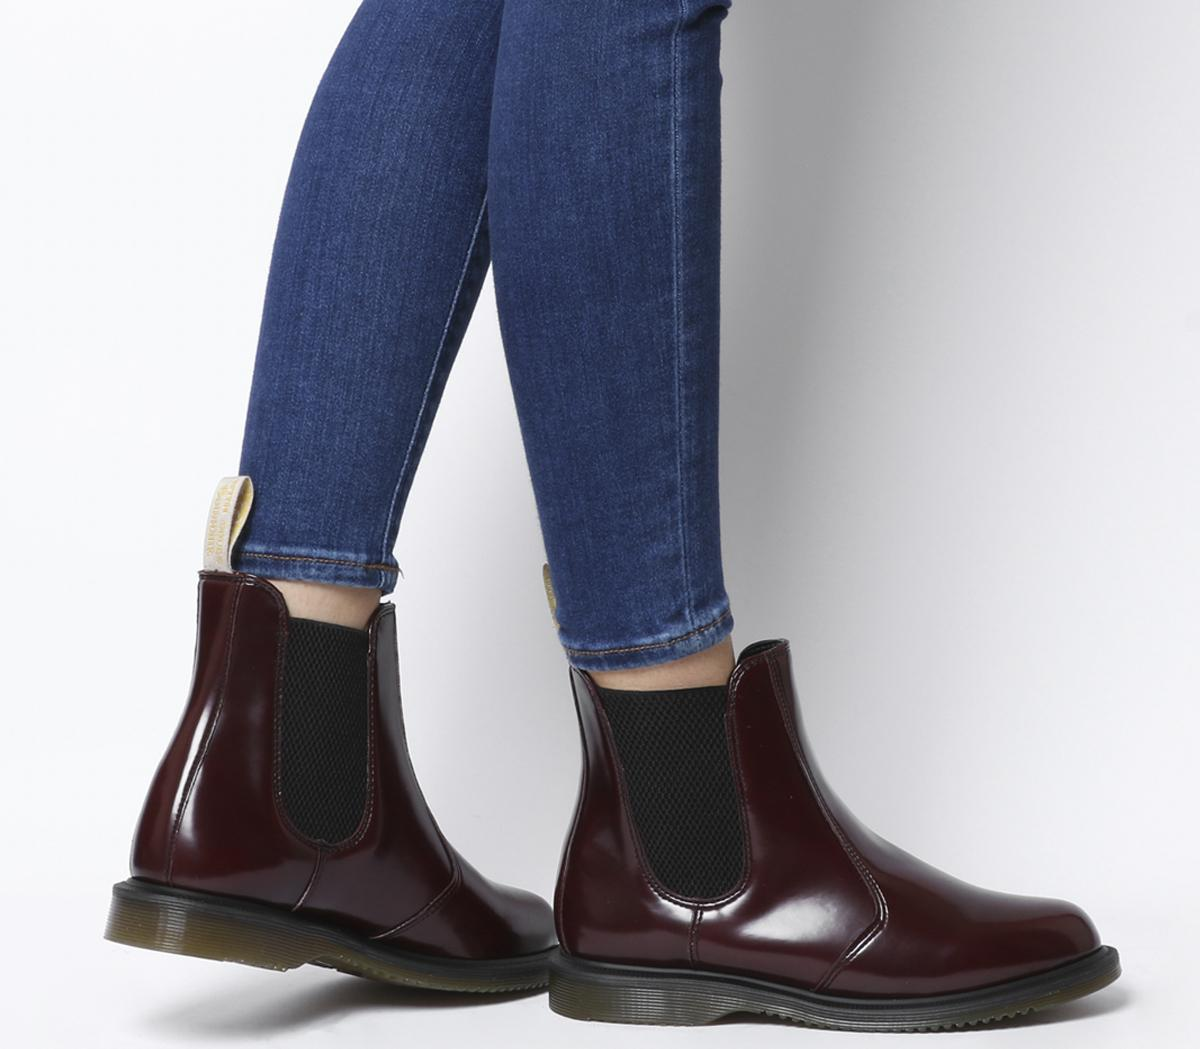 Dr. Martens Flora Chelsea Boot (With images) | Chelsea boots